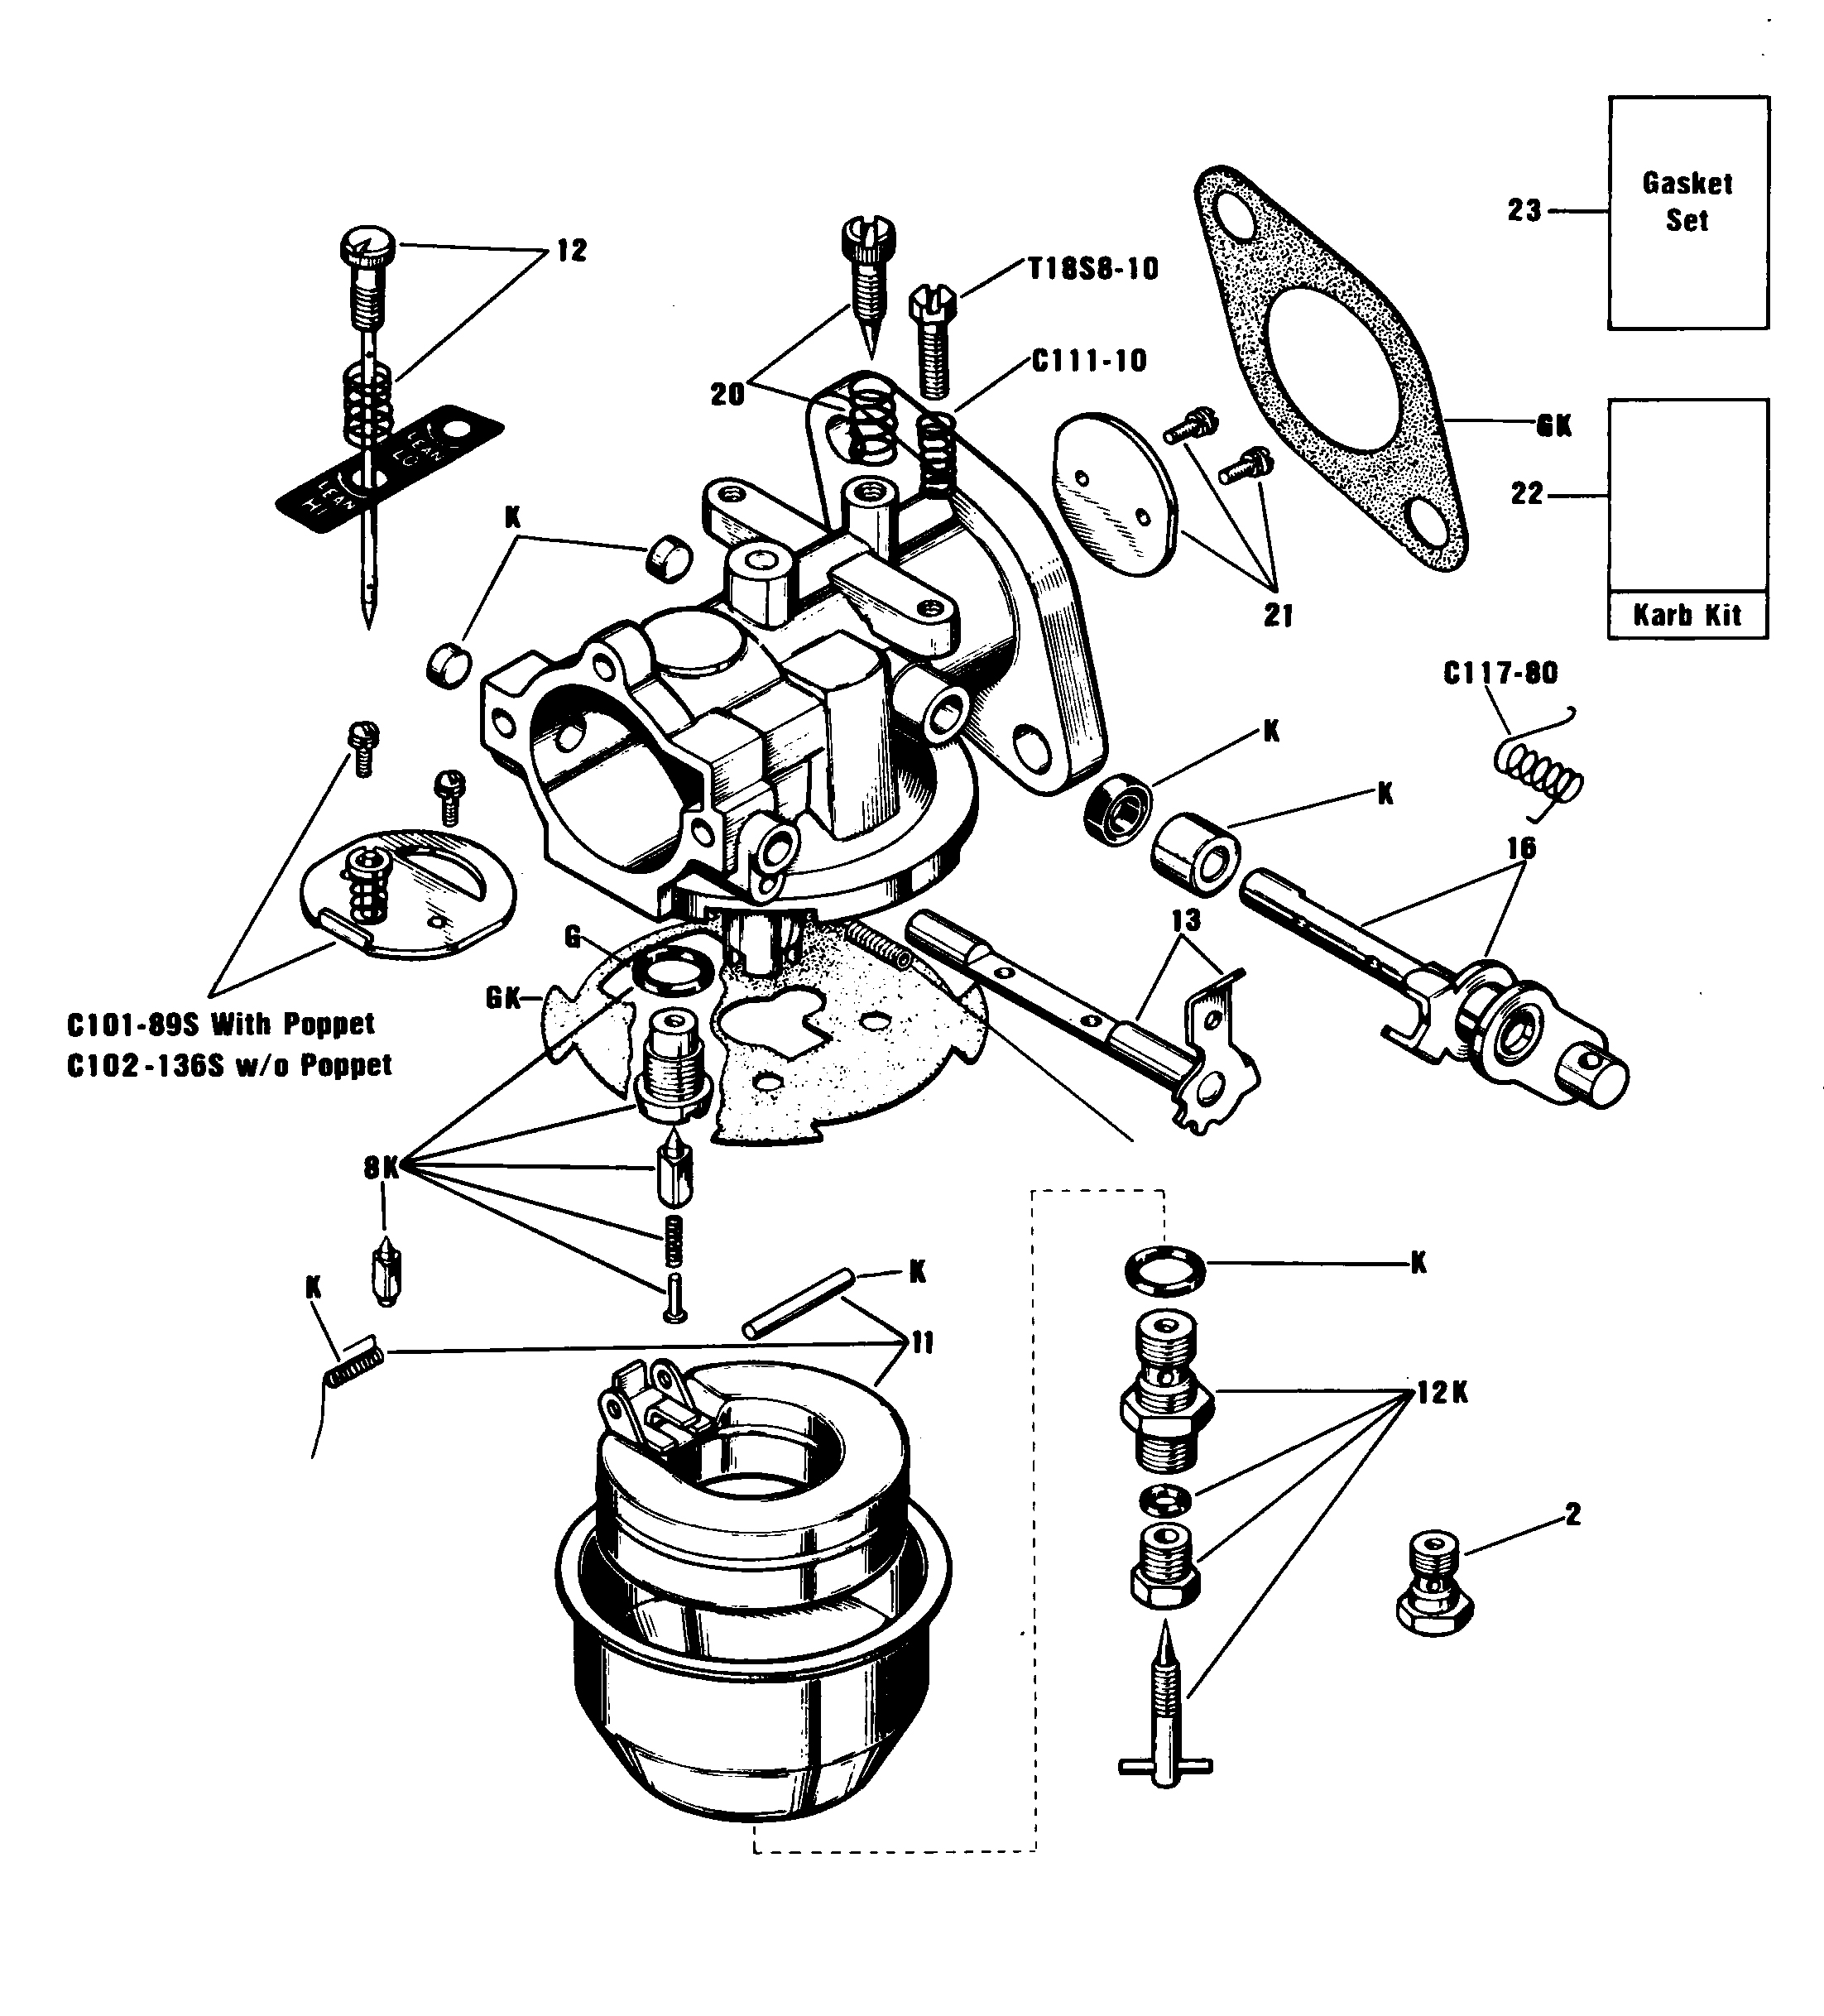 Zenith 13208 carburetor kit float and manual rh carbkitsource 690194 carburetor parts diagram keihin carburetor parts diagram